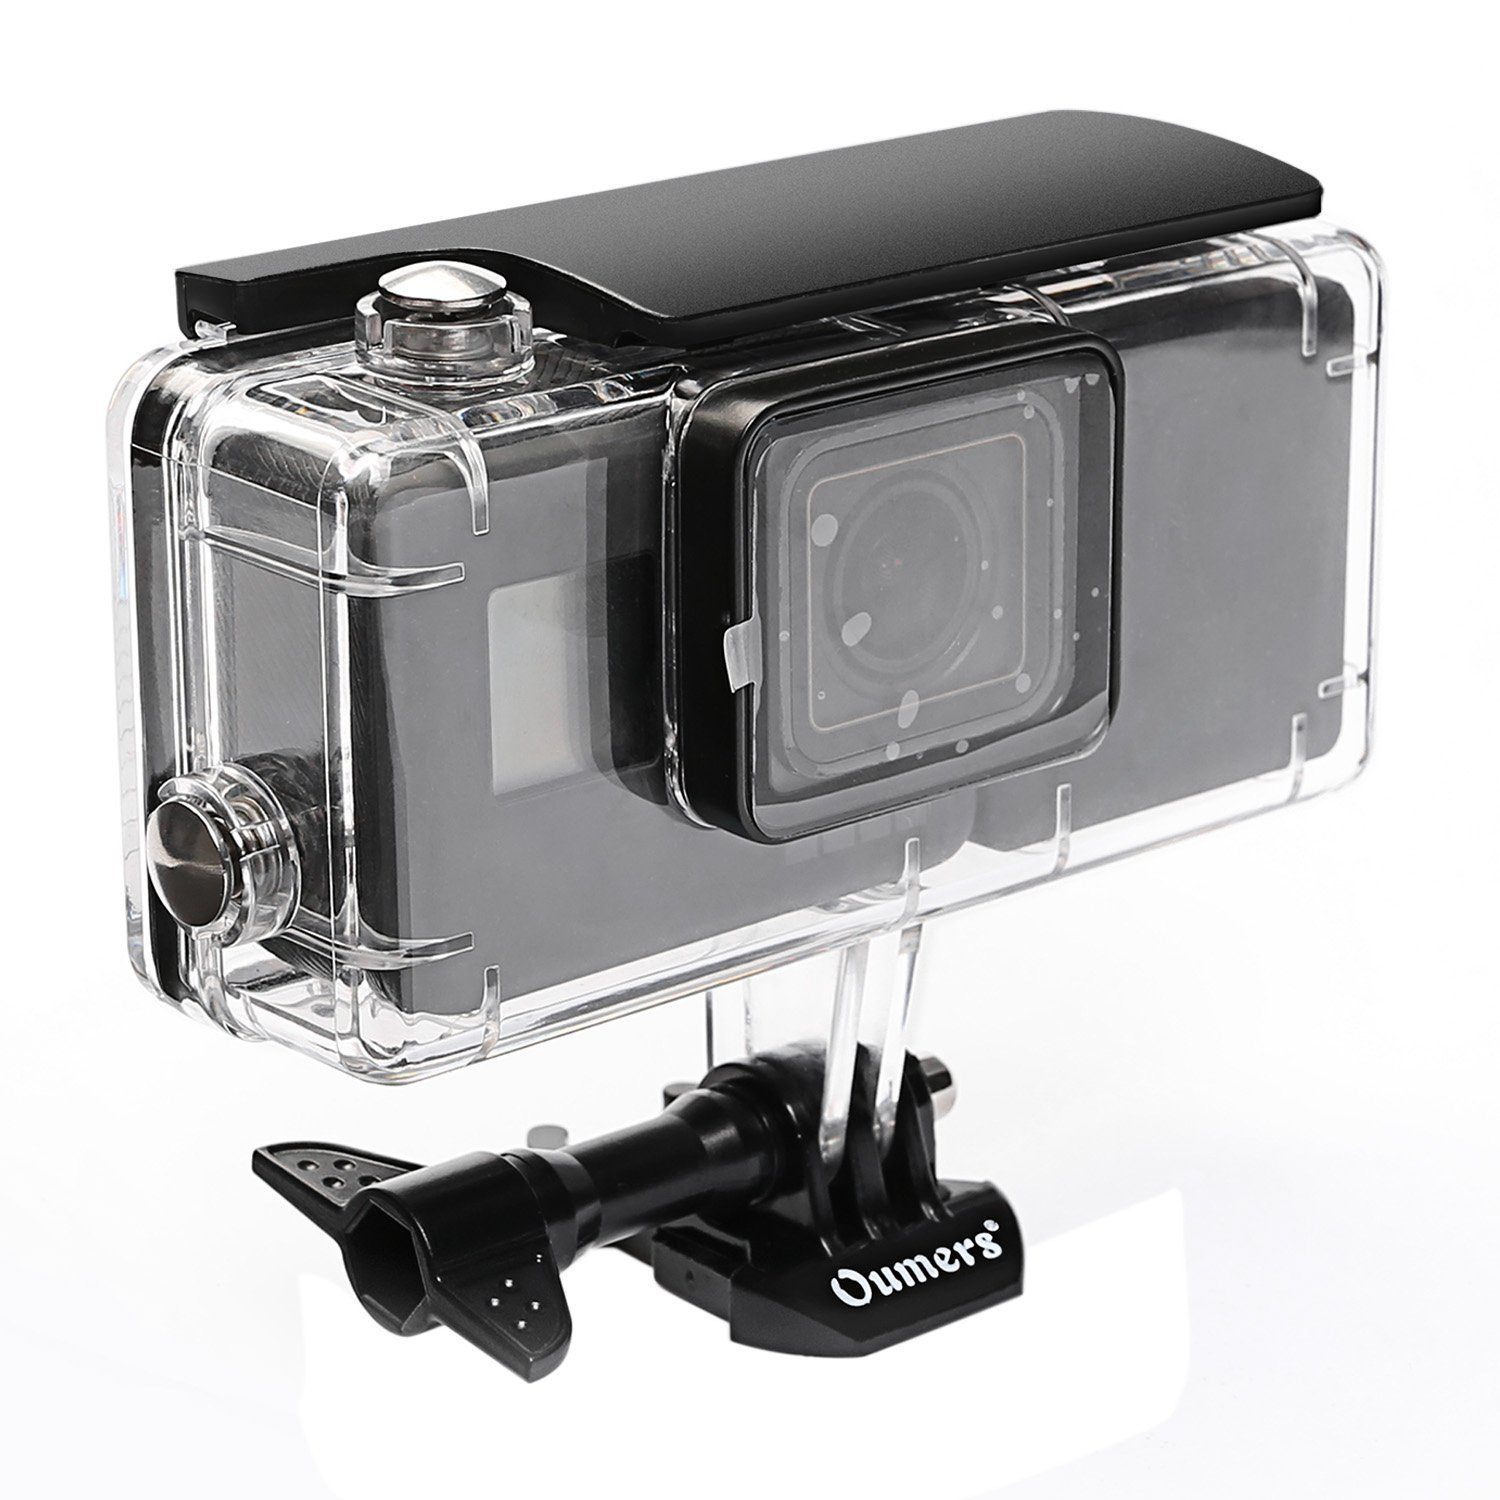 Oumers Housing Diving Case for GoPro Hero(2018) Hero5 Black GoPro Hero6 with Extended Battery 2300mah & Bracket. Replacement Waterproof Diving Cover/Protective Case 45M Underwater Photography Shooting